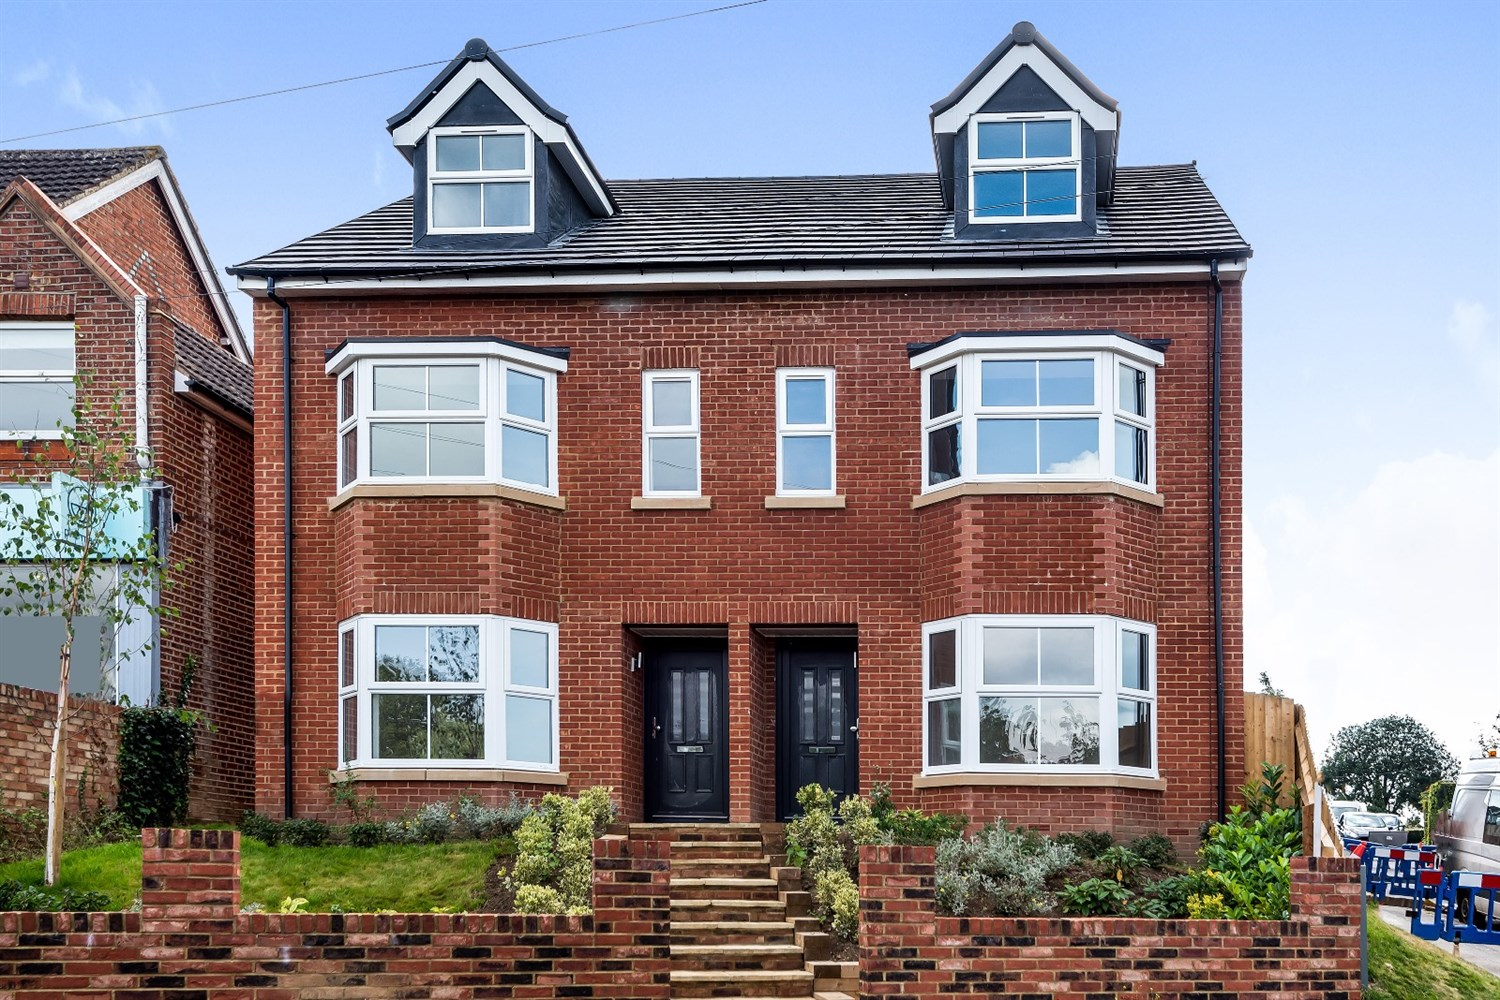 Mumbery House at Victoria Road - 3 bed semi-detached, Wargrave, RG10 8AE